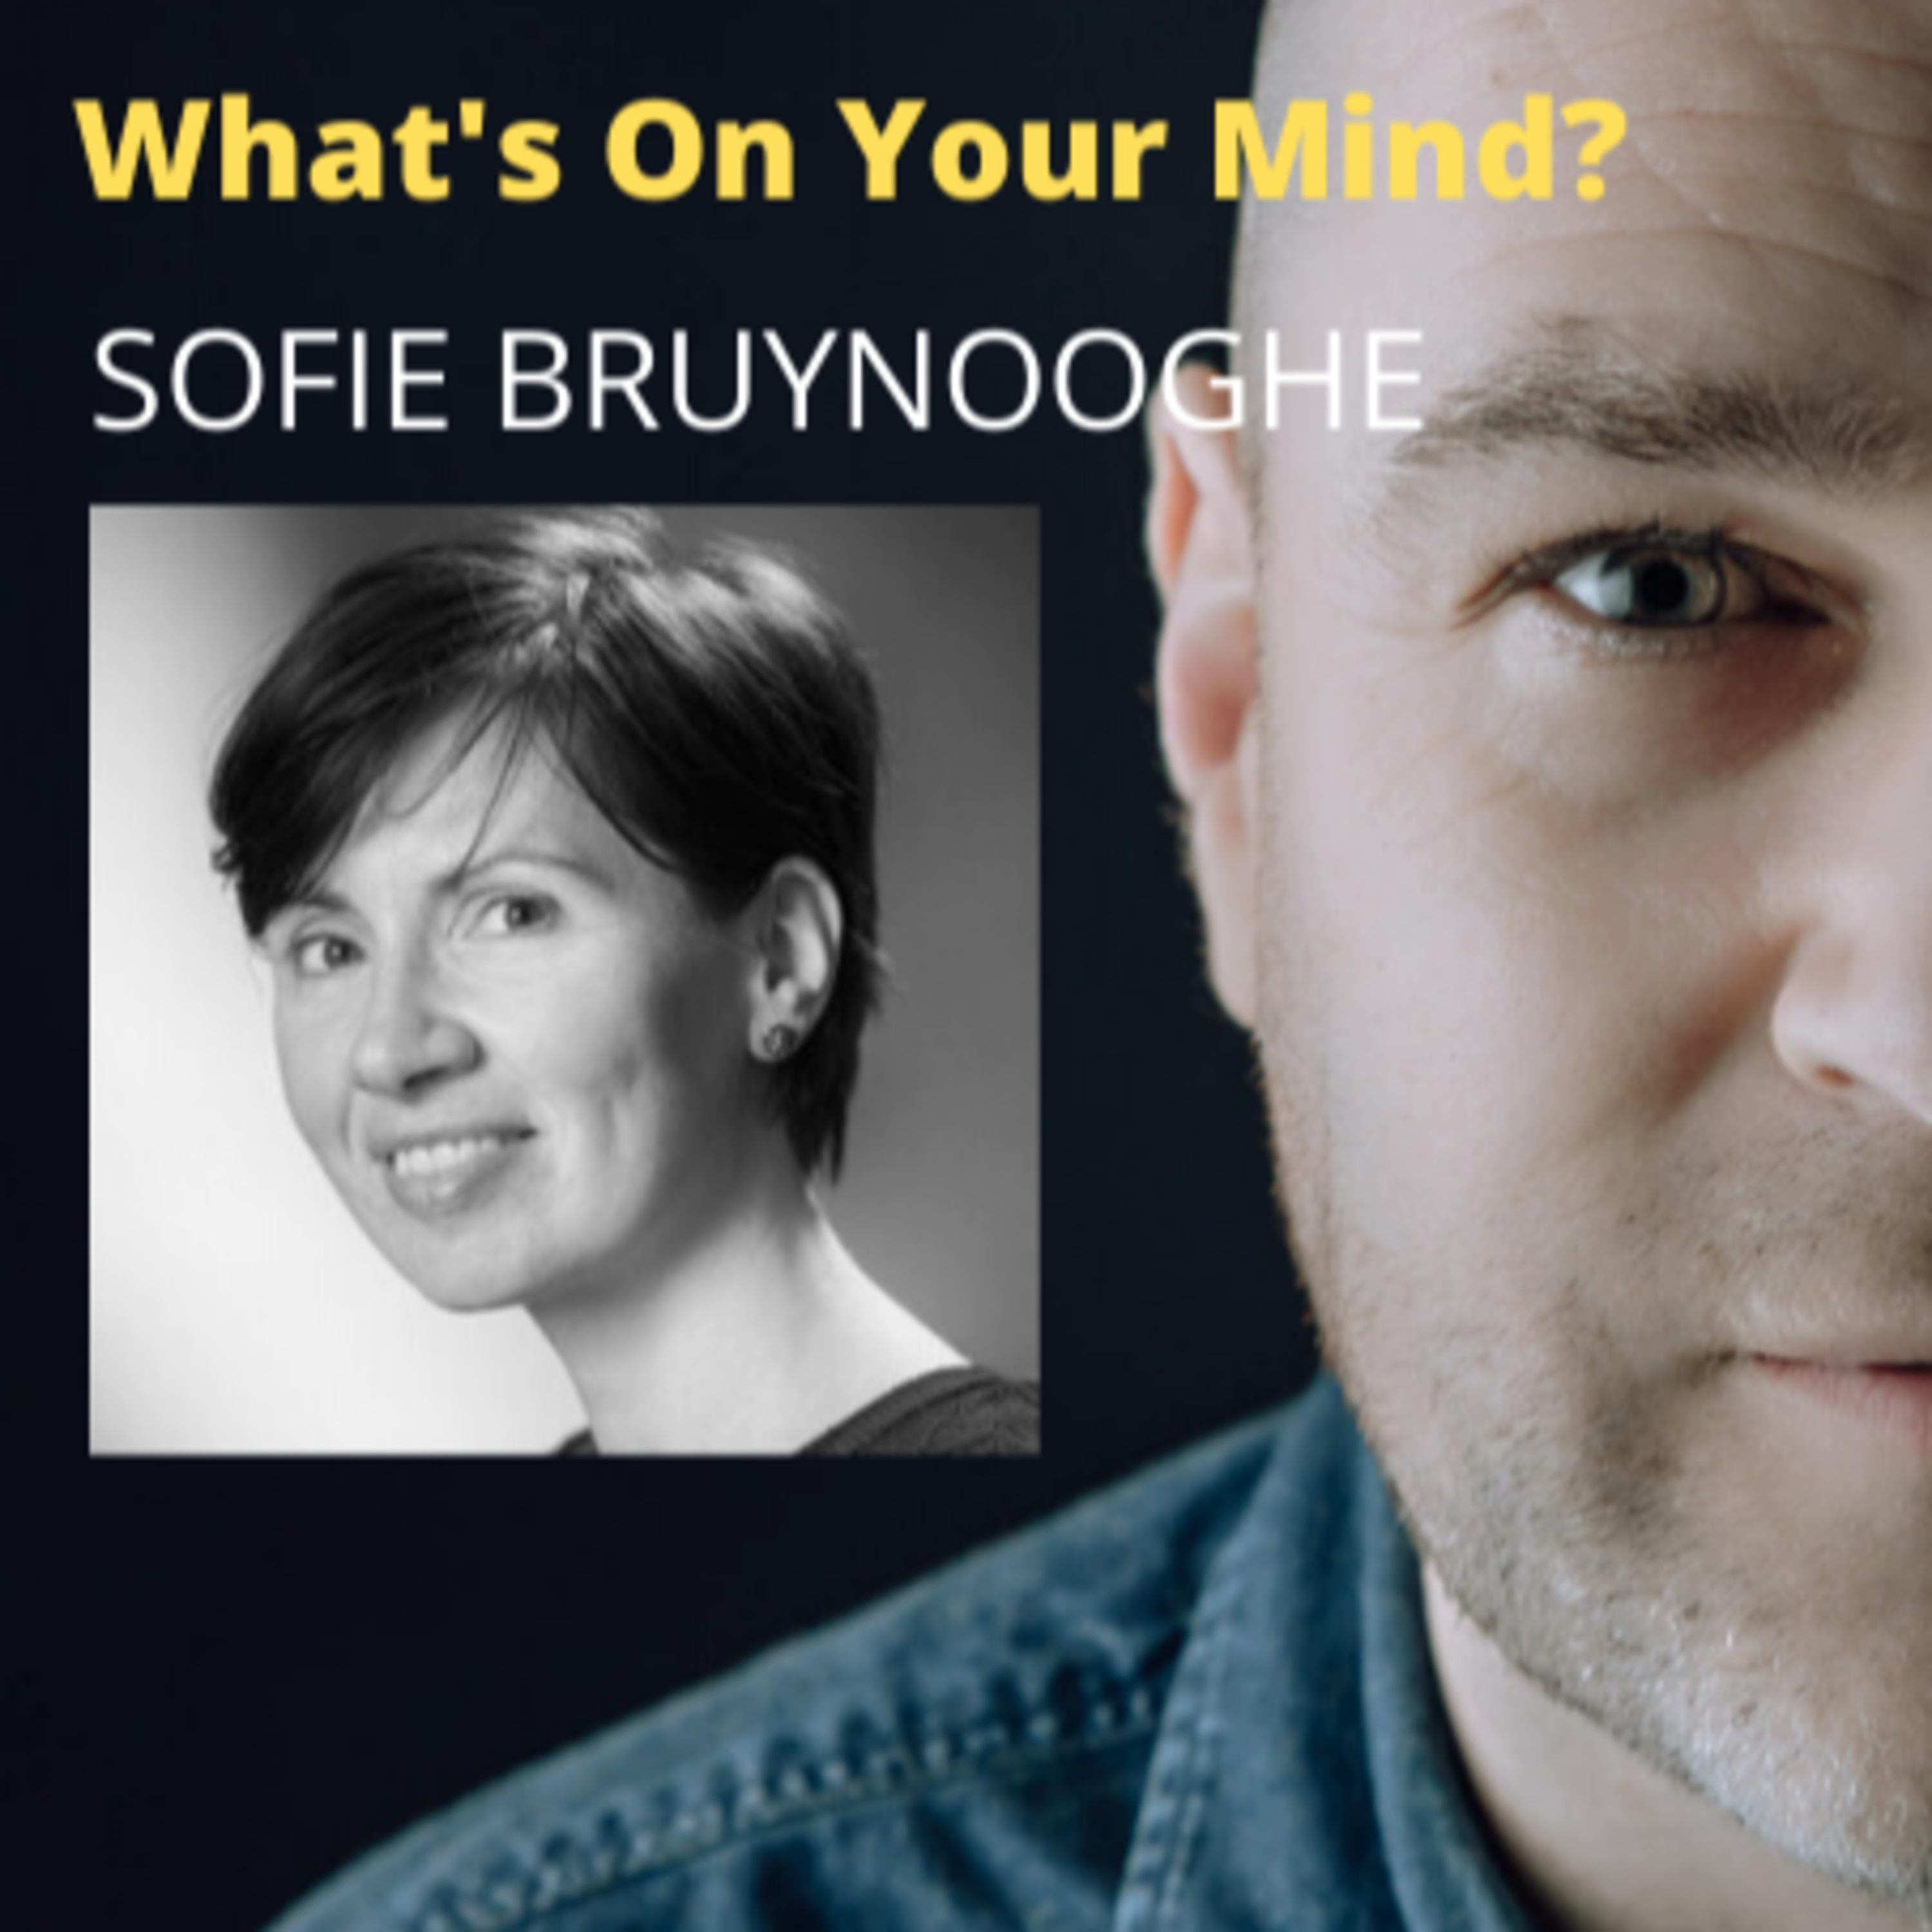 What's On Your Mind 18: Sofie Bruynooghe